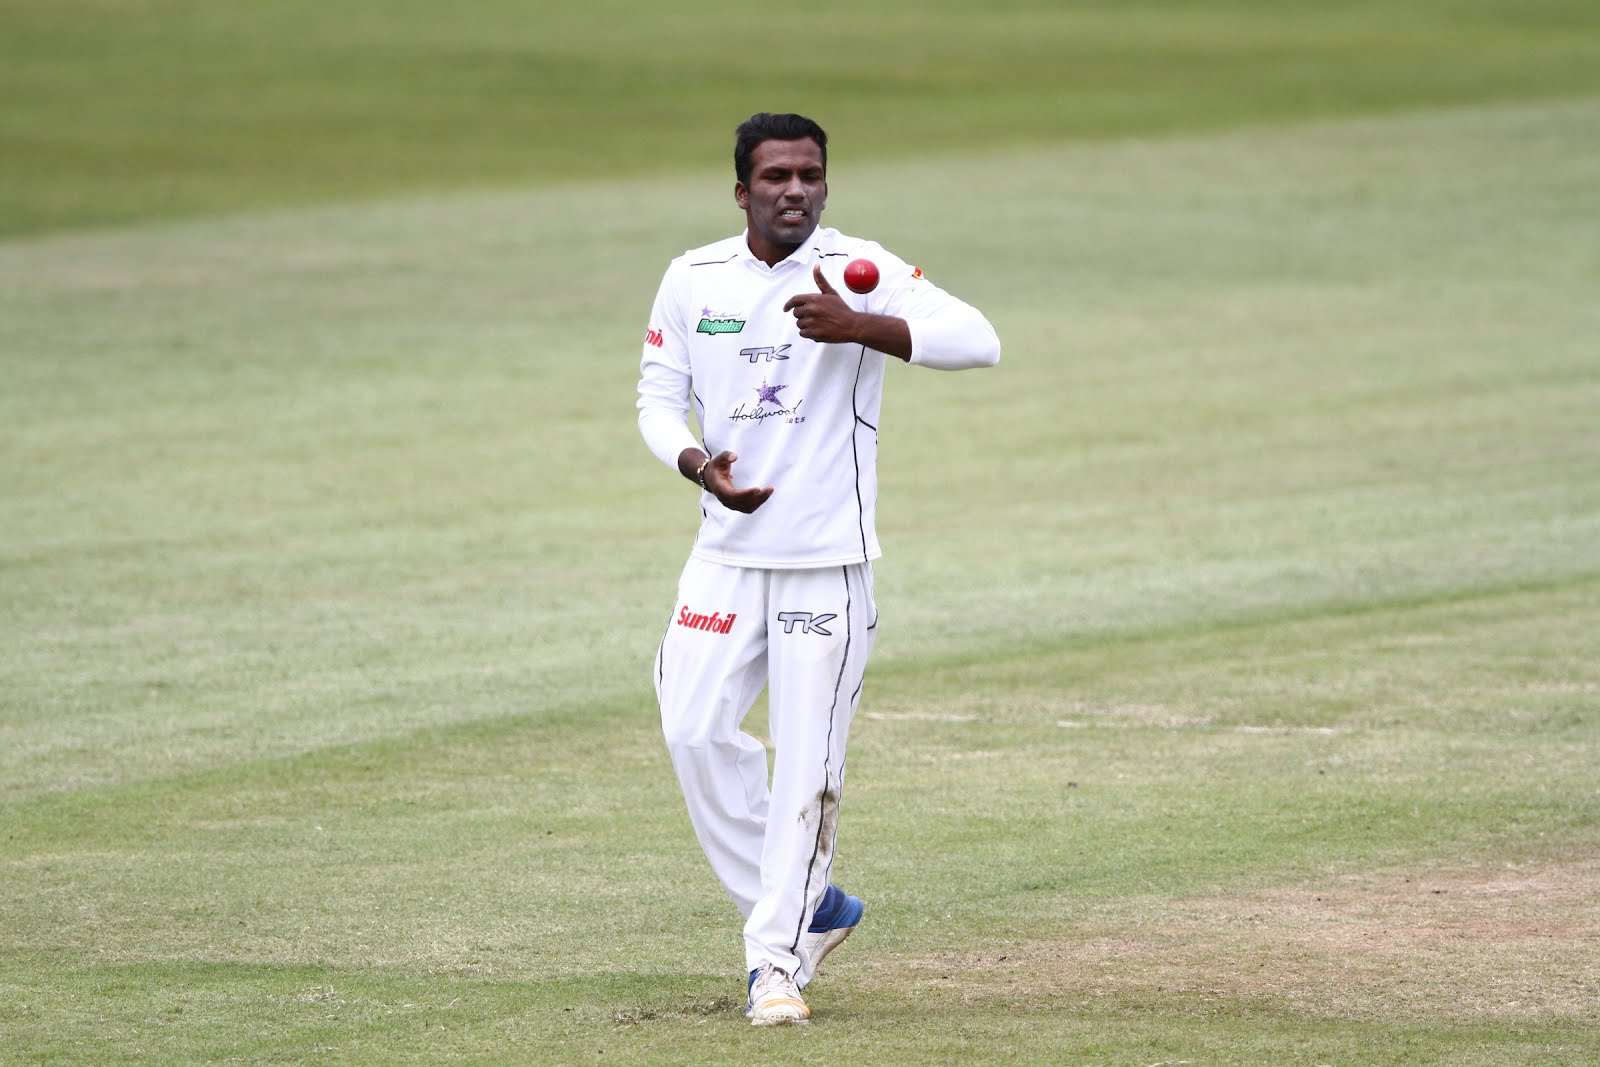 Hollywoodbets Dolphins all-rounder Senuran Muthusamy